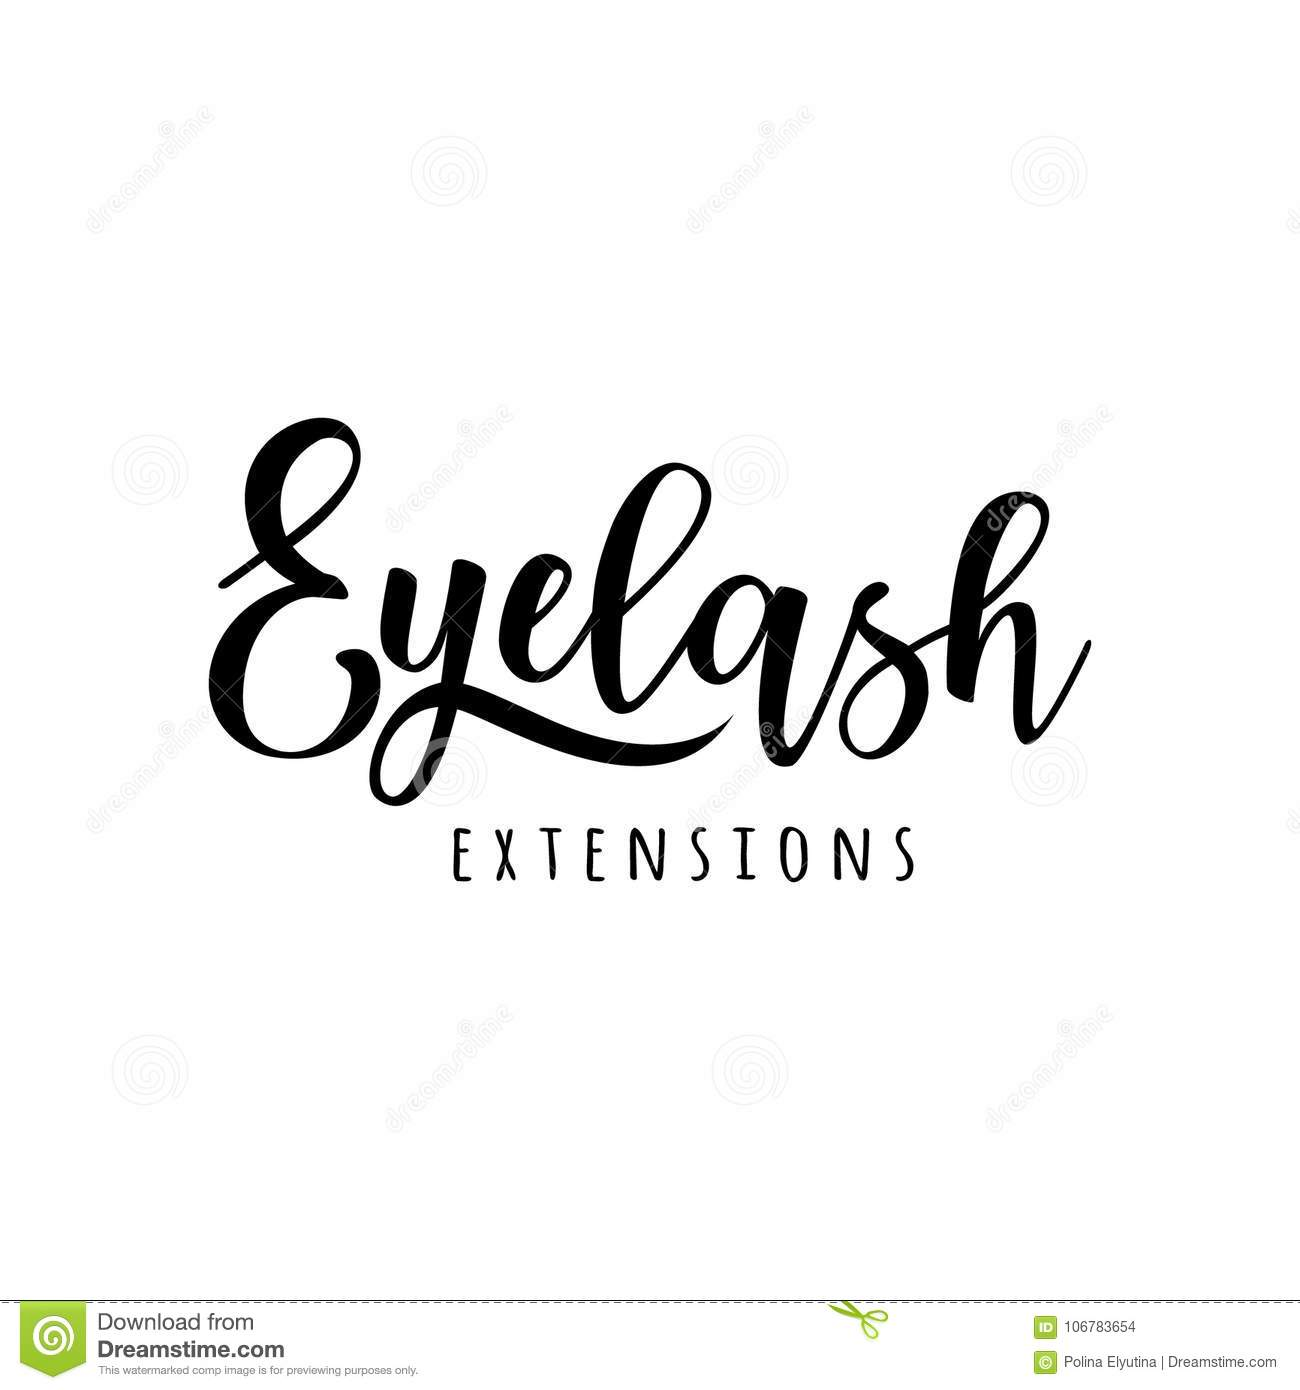 1fe40bc139c Eyelash extension logo. Vector illustration in a modern style. For beauty  salon, lash extensions maker. More similar stock illustrations